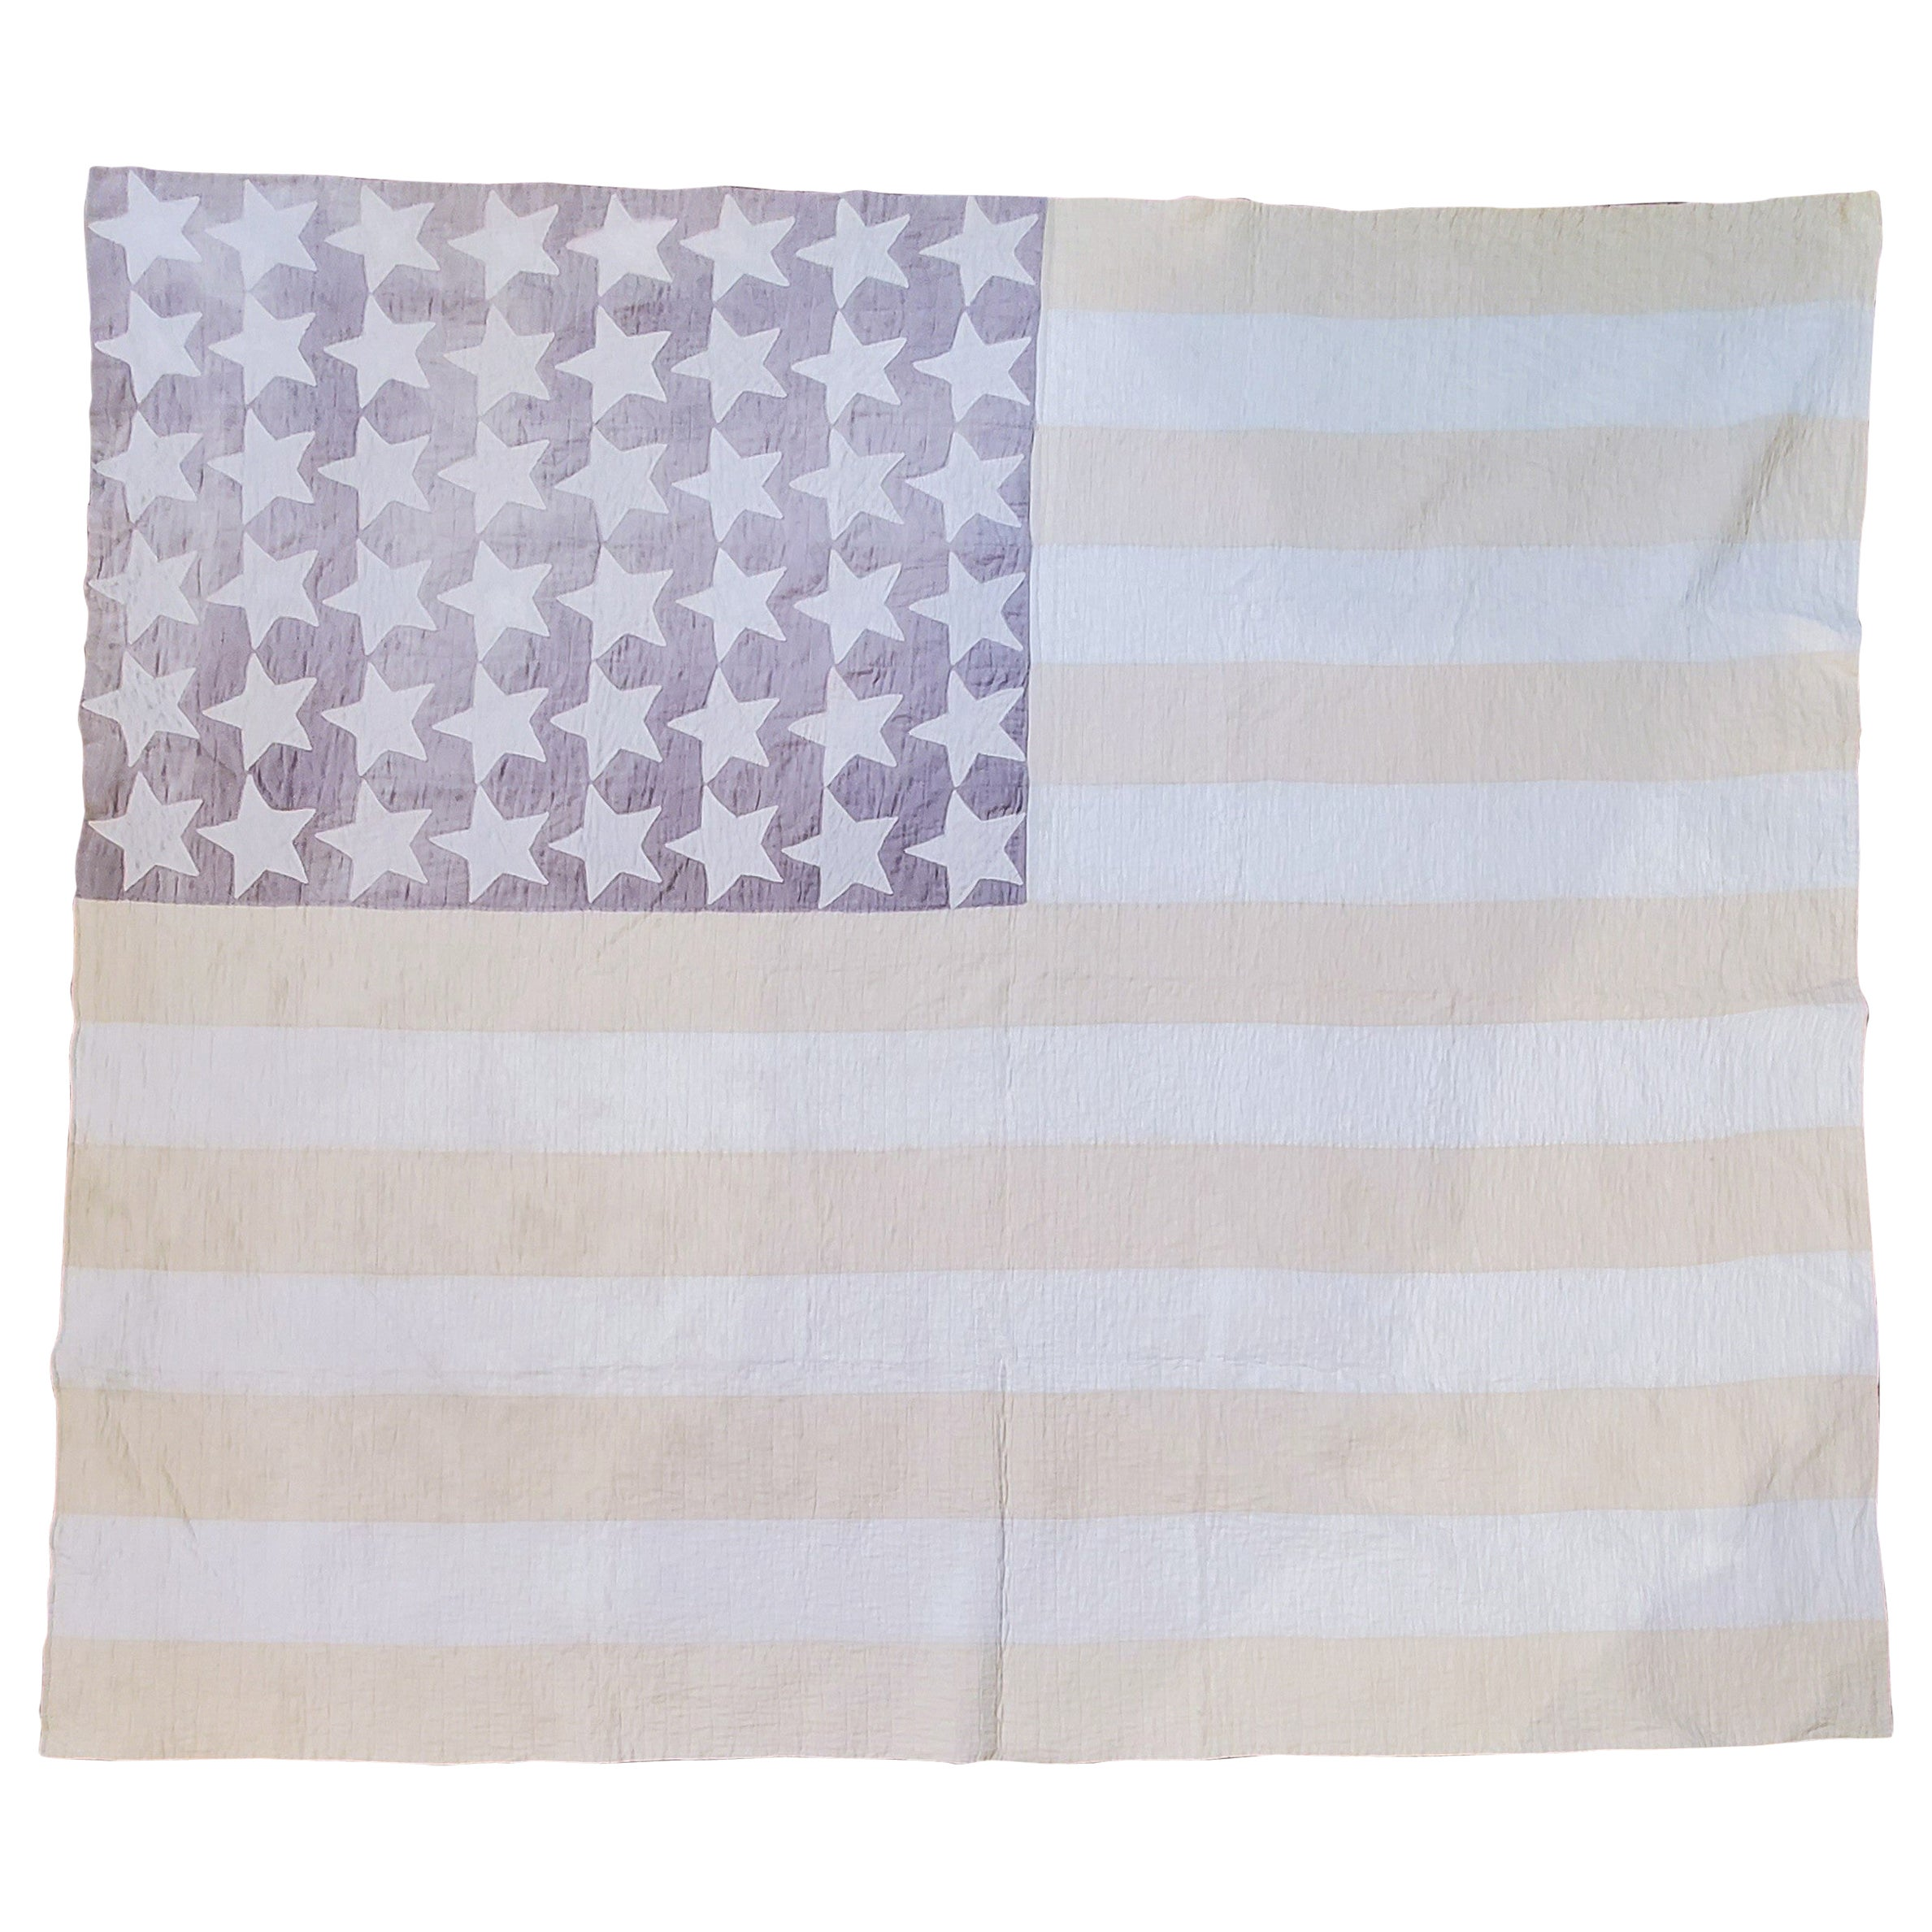 Antique Flag Quilt from 1915 Hand Sewn Stars